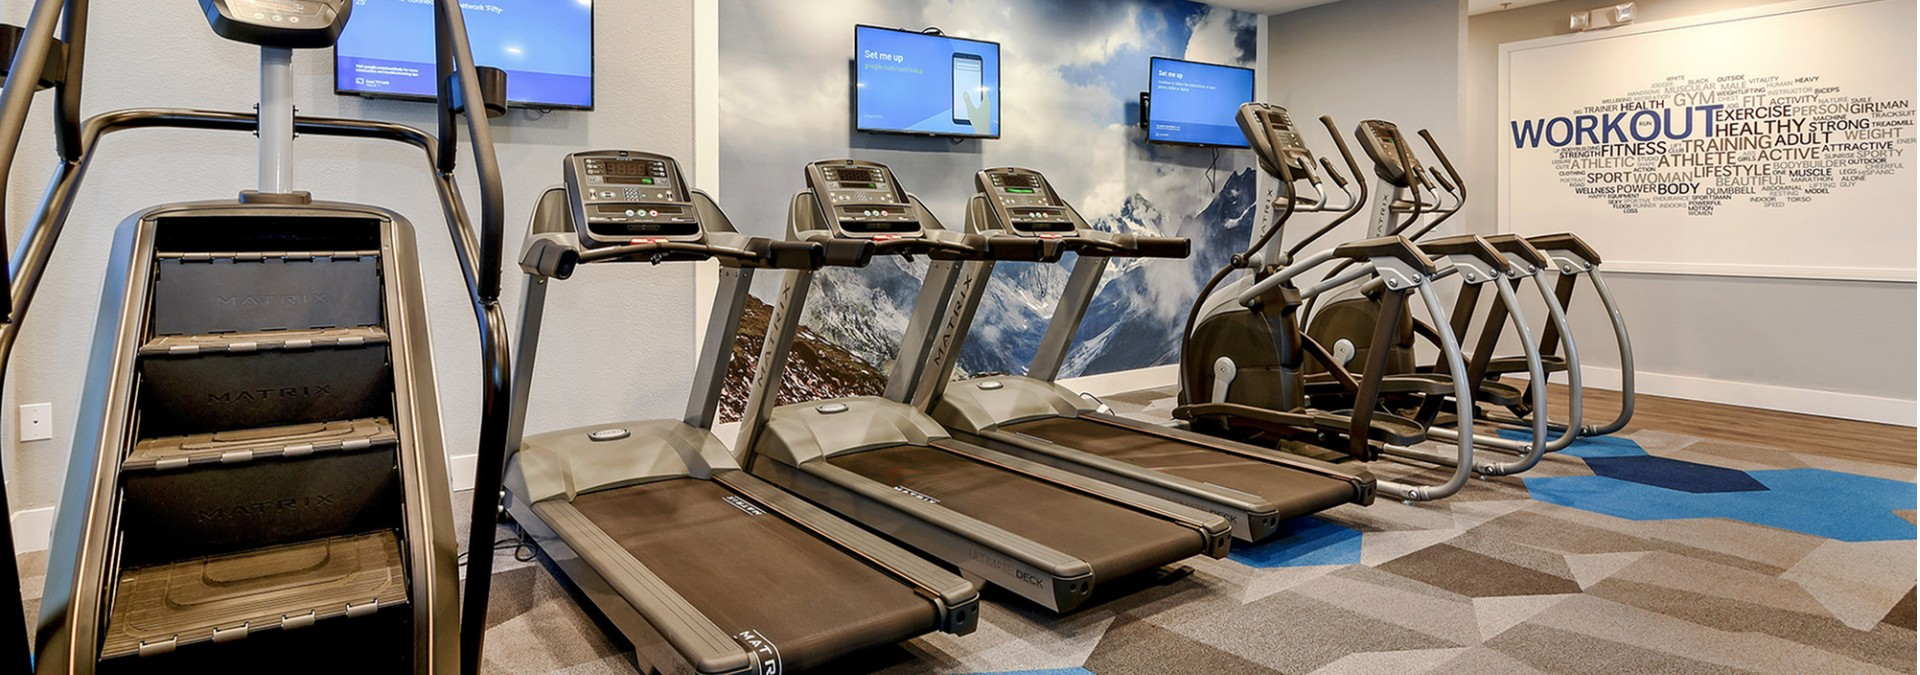 Fitness Center at Fifty Twenty Five 3